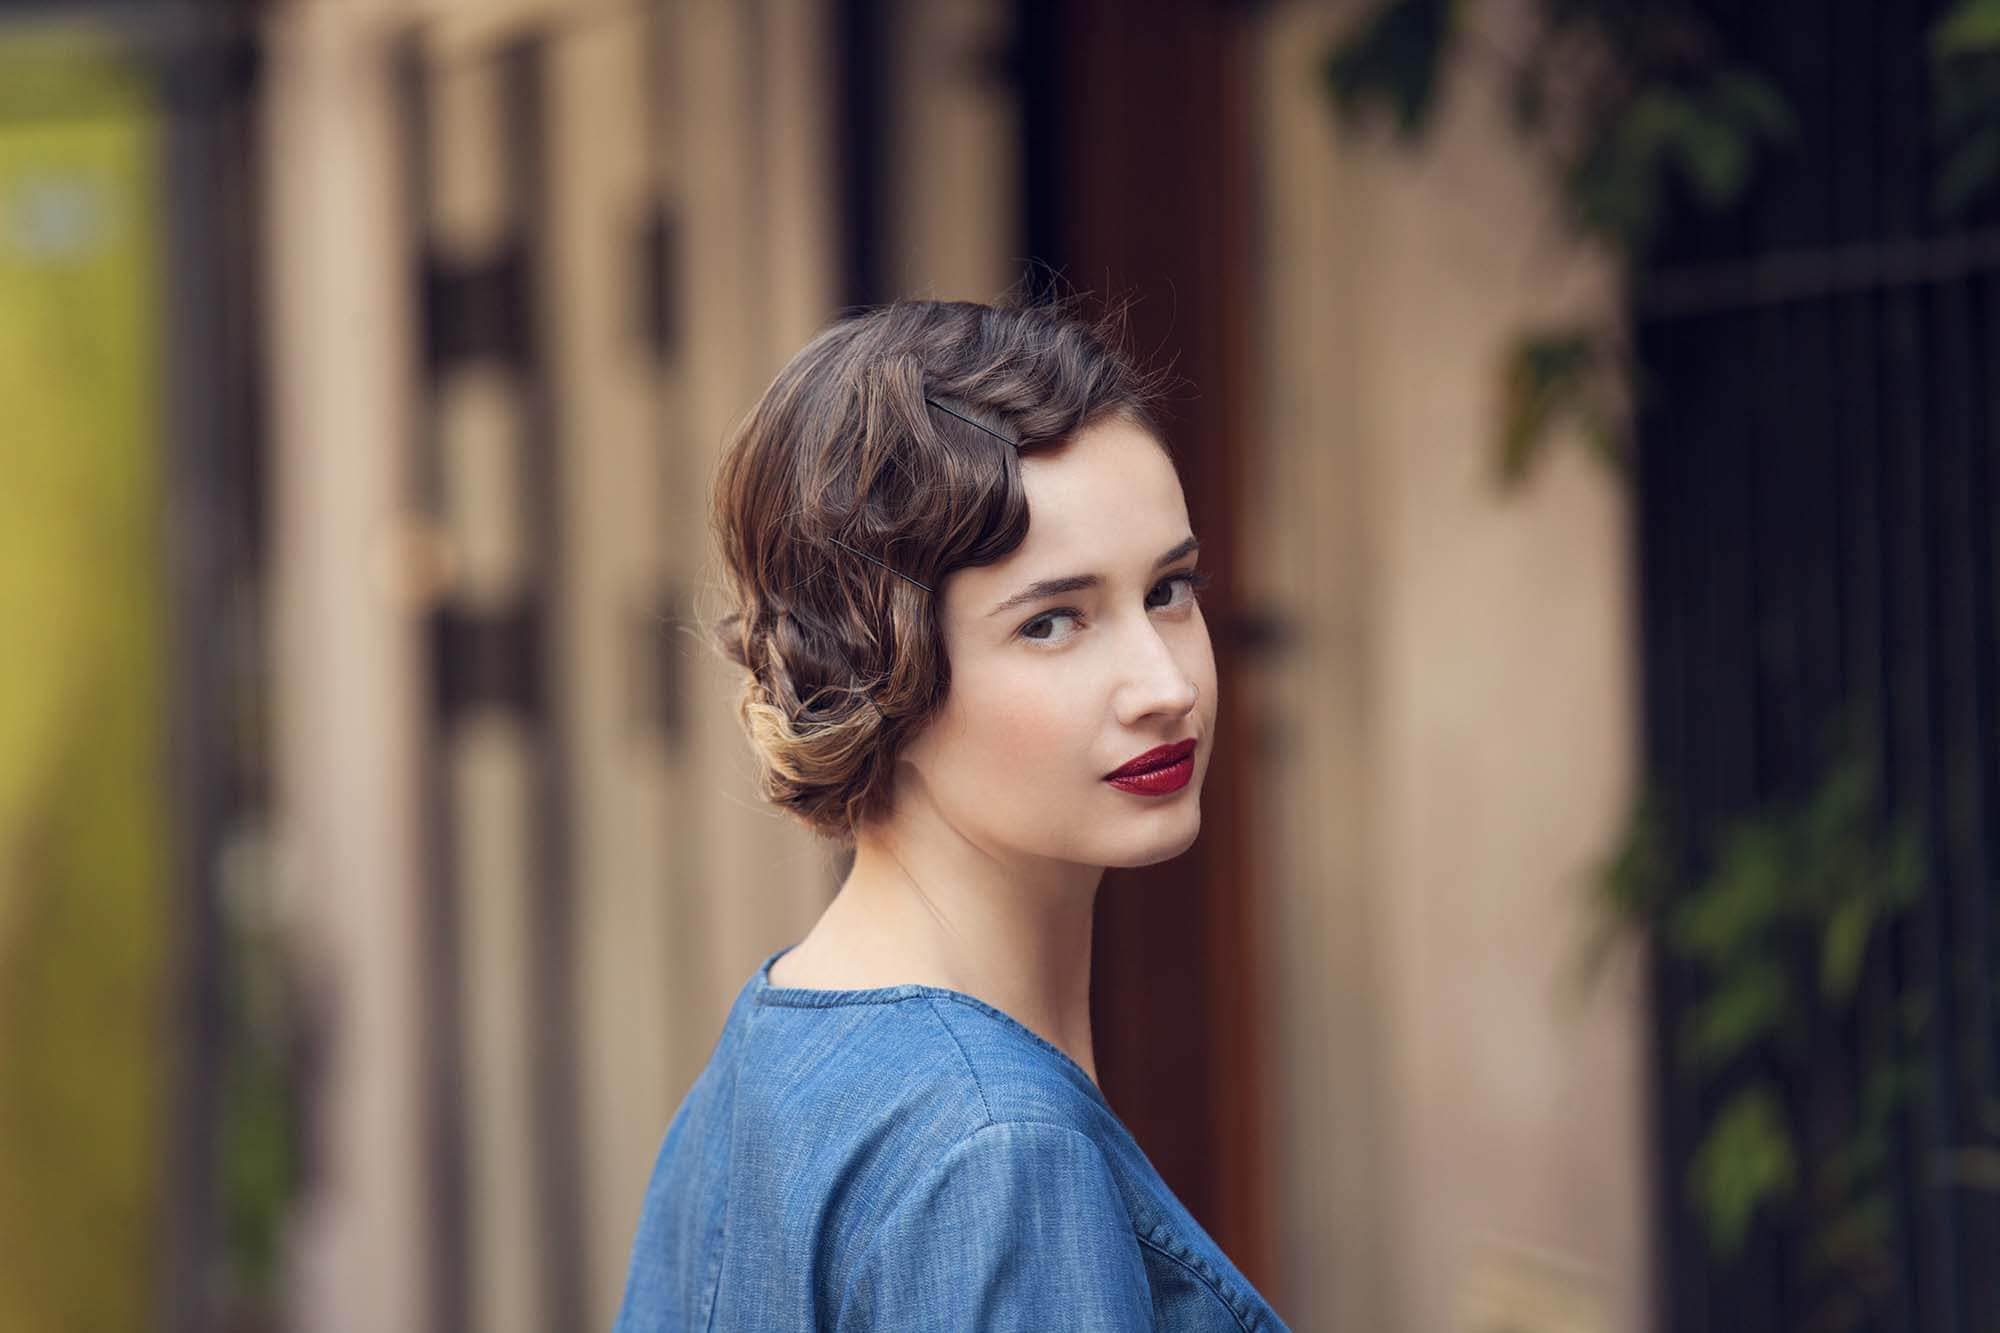 Tutorial: How To Recreate Flapper Hairstyles